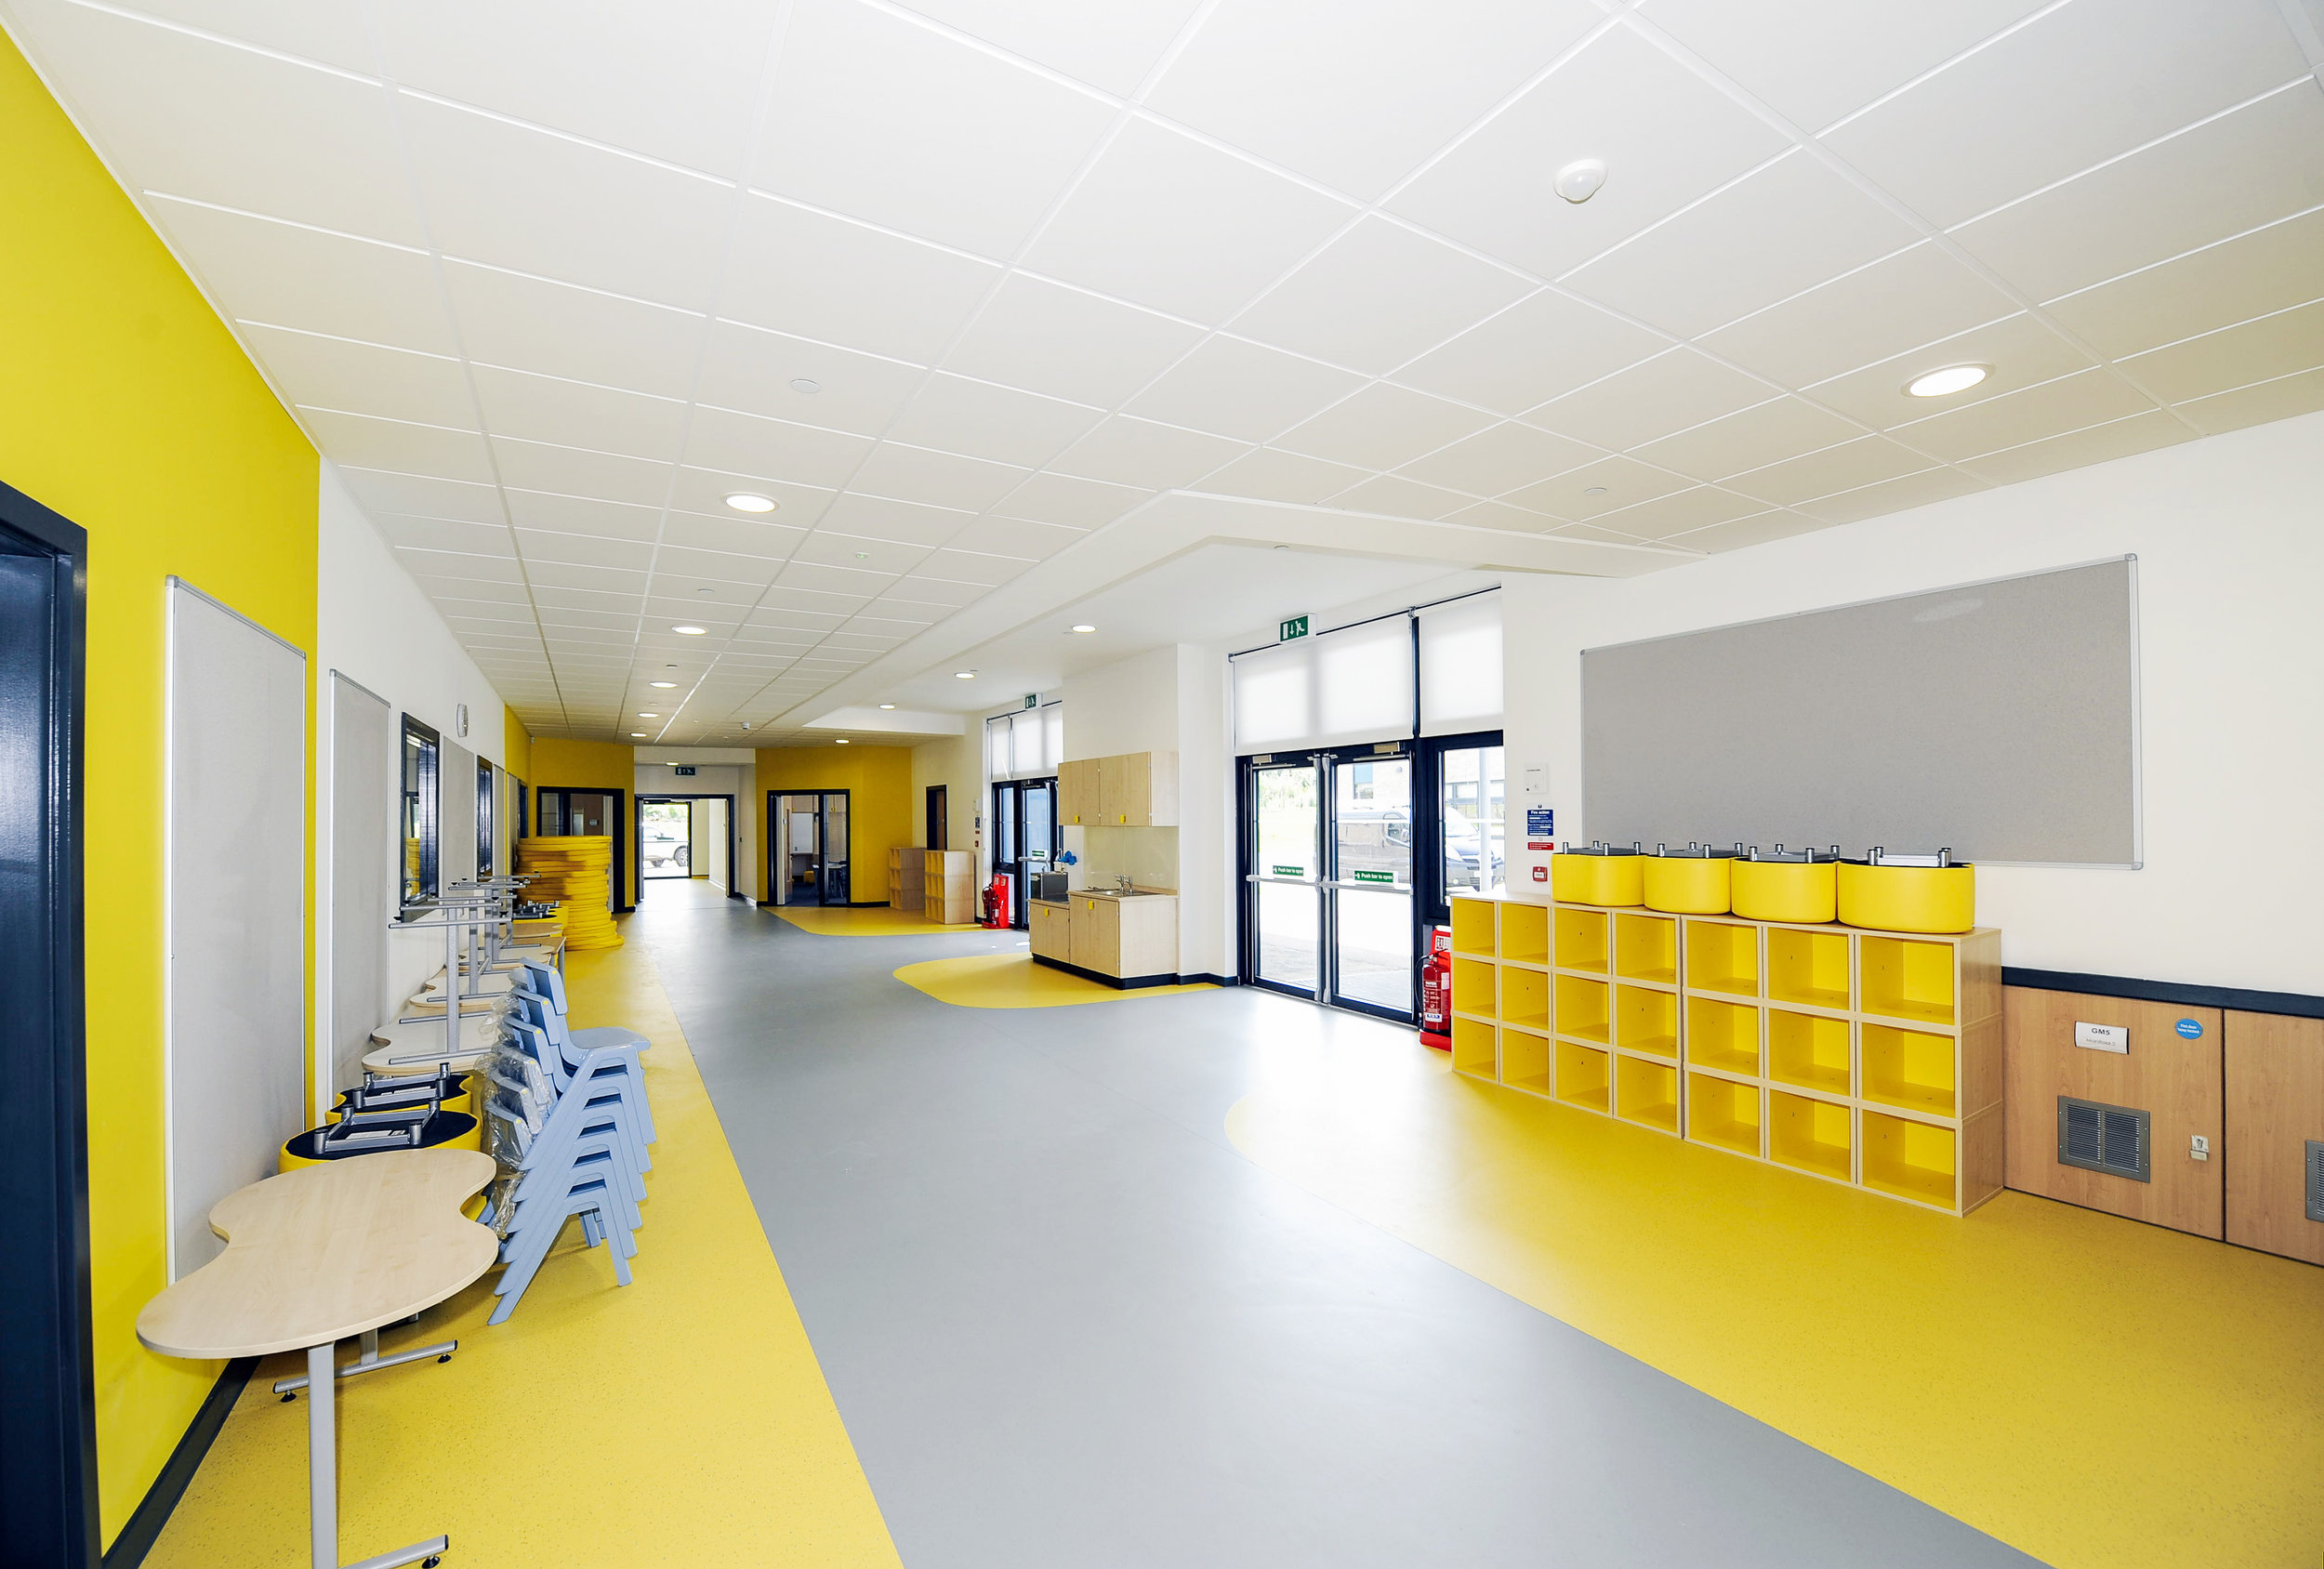 Corridor Refurbishment Scheme